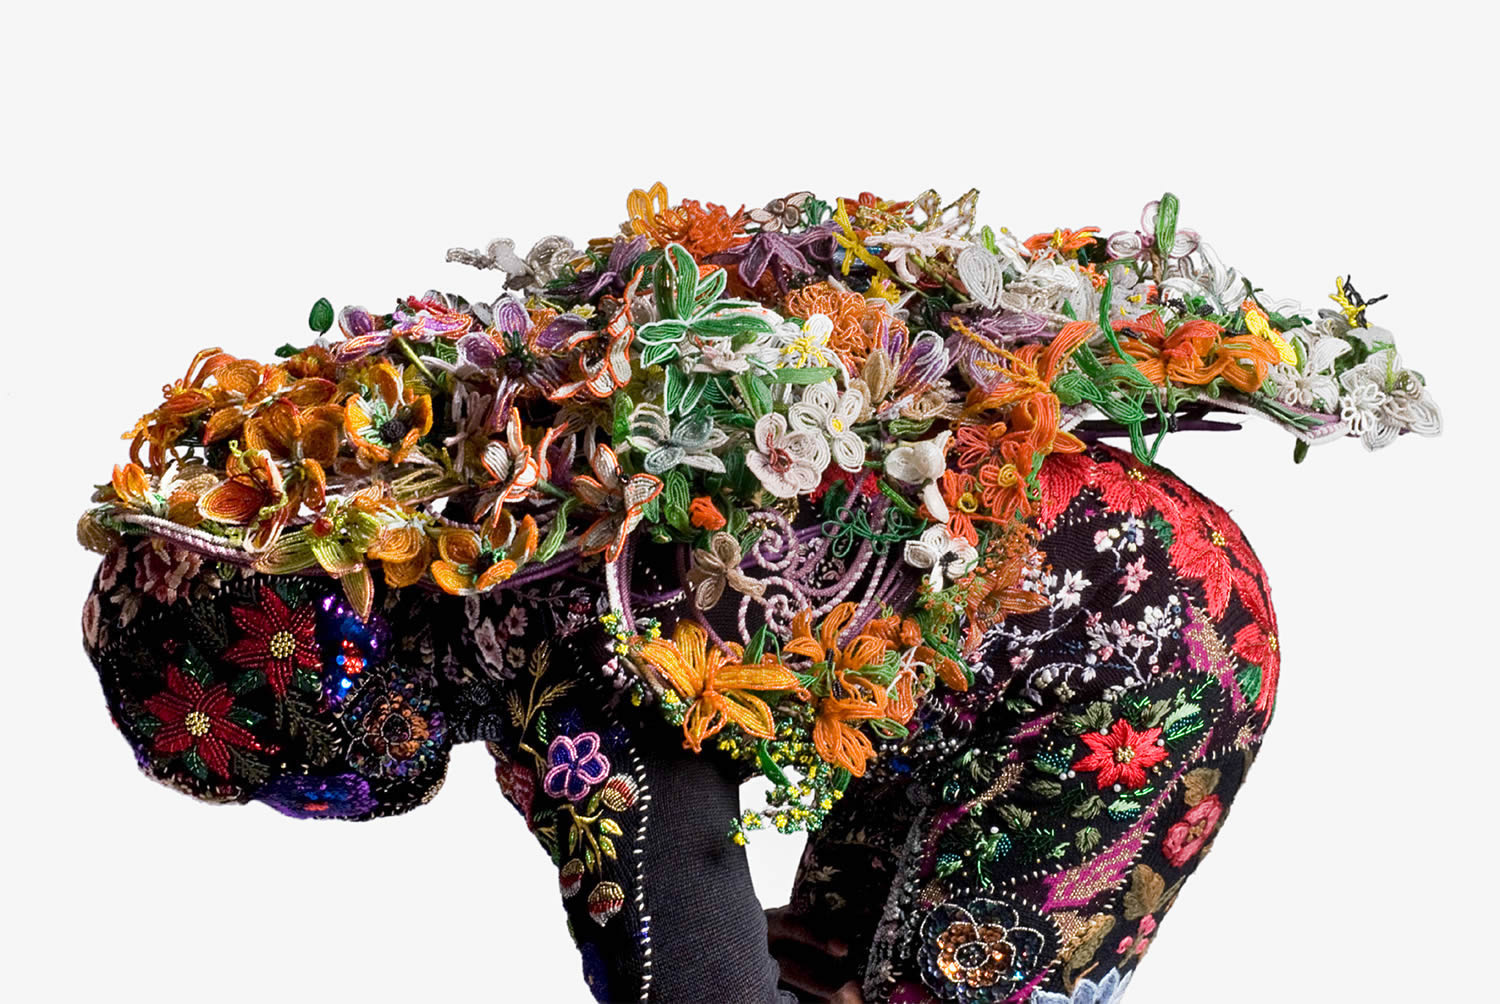 soundsuit, flowery suit by Nick Cave